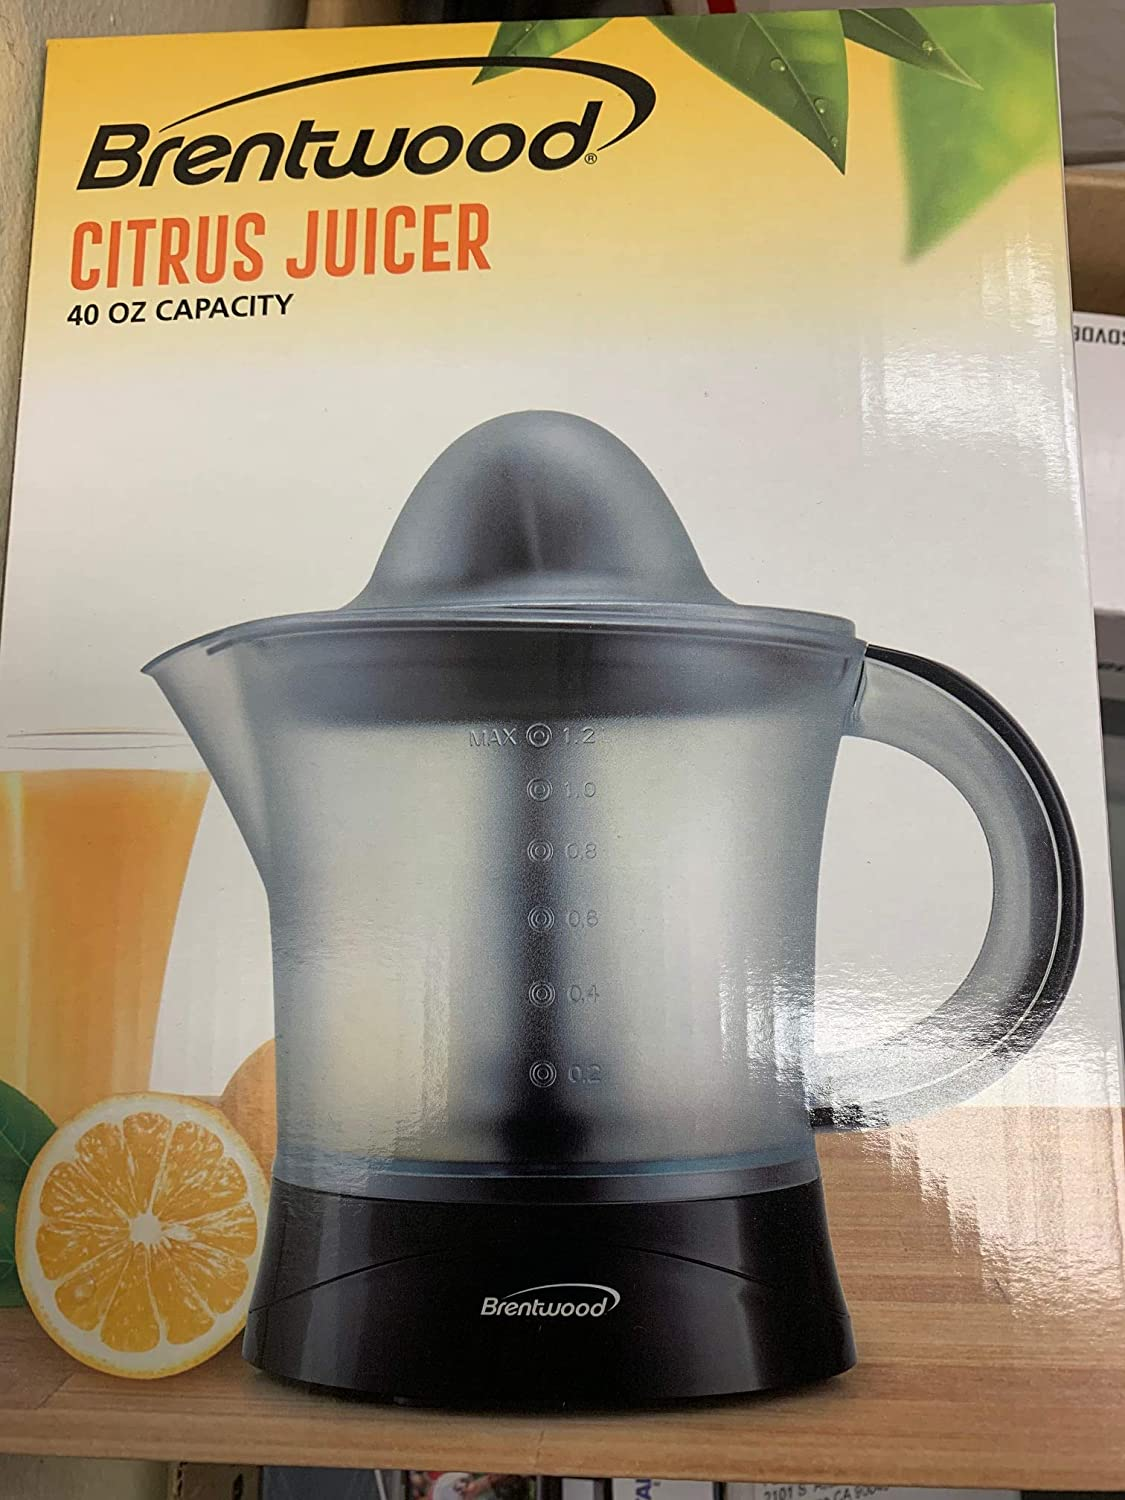 Brentwood Appliances J17BK 40-Ounce Electric Citrus Juicer (Black)